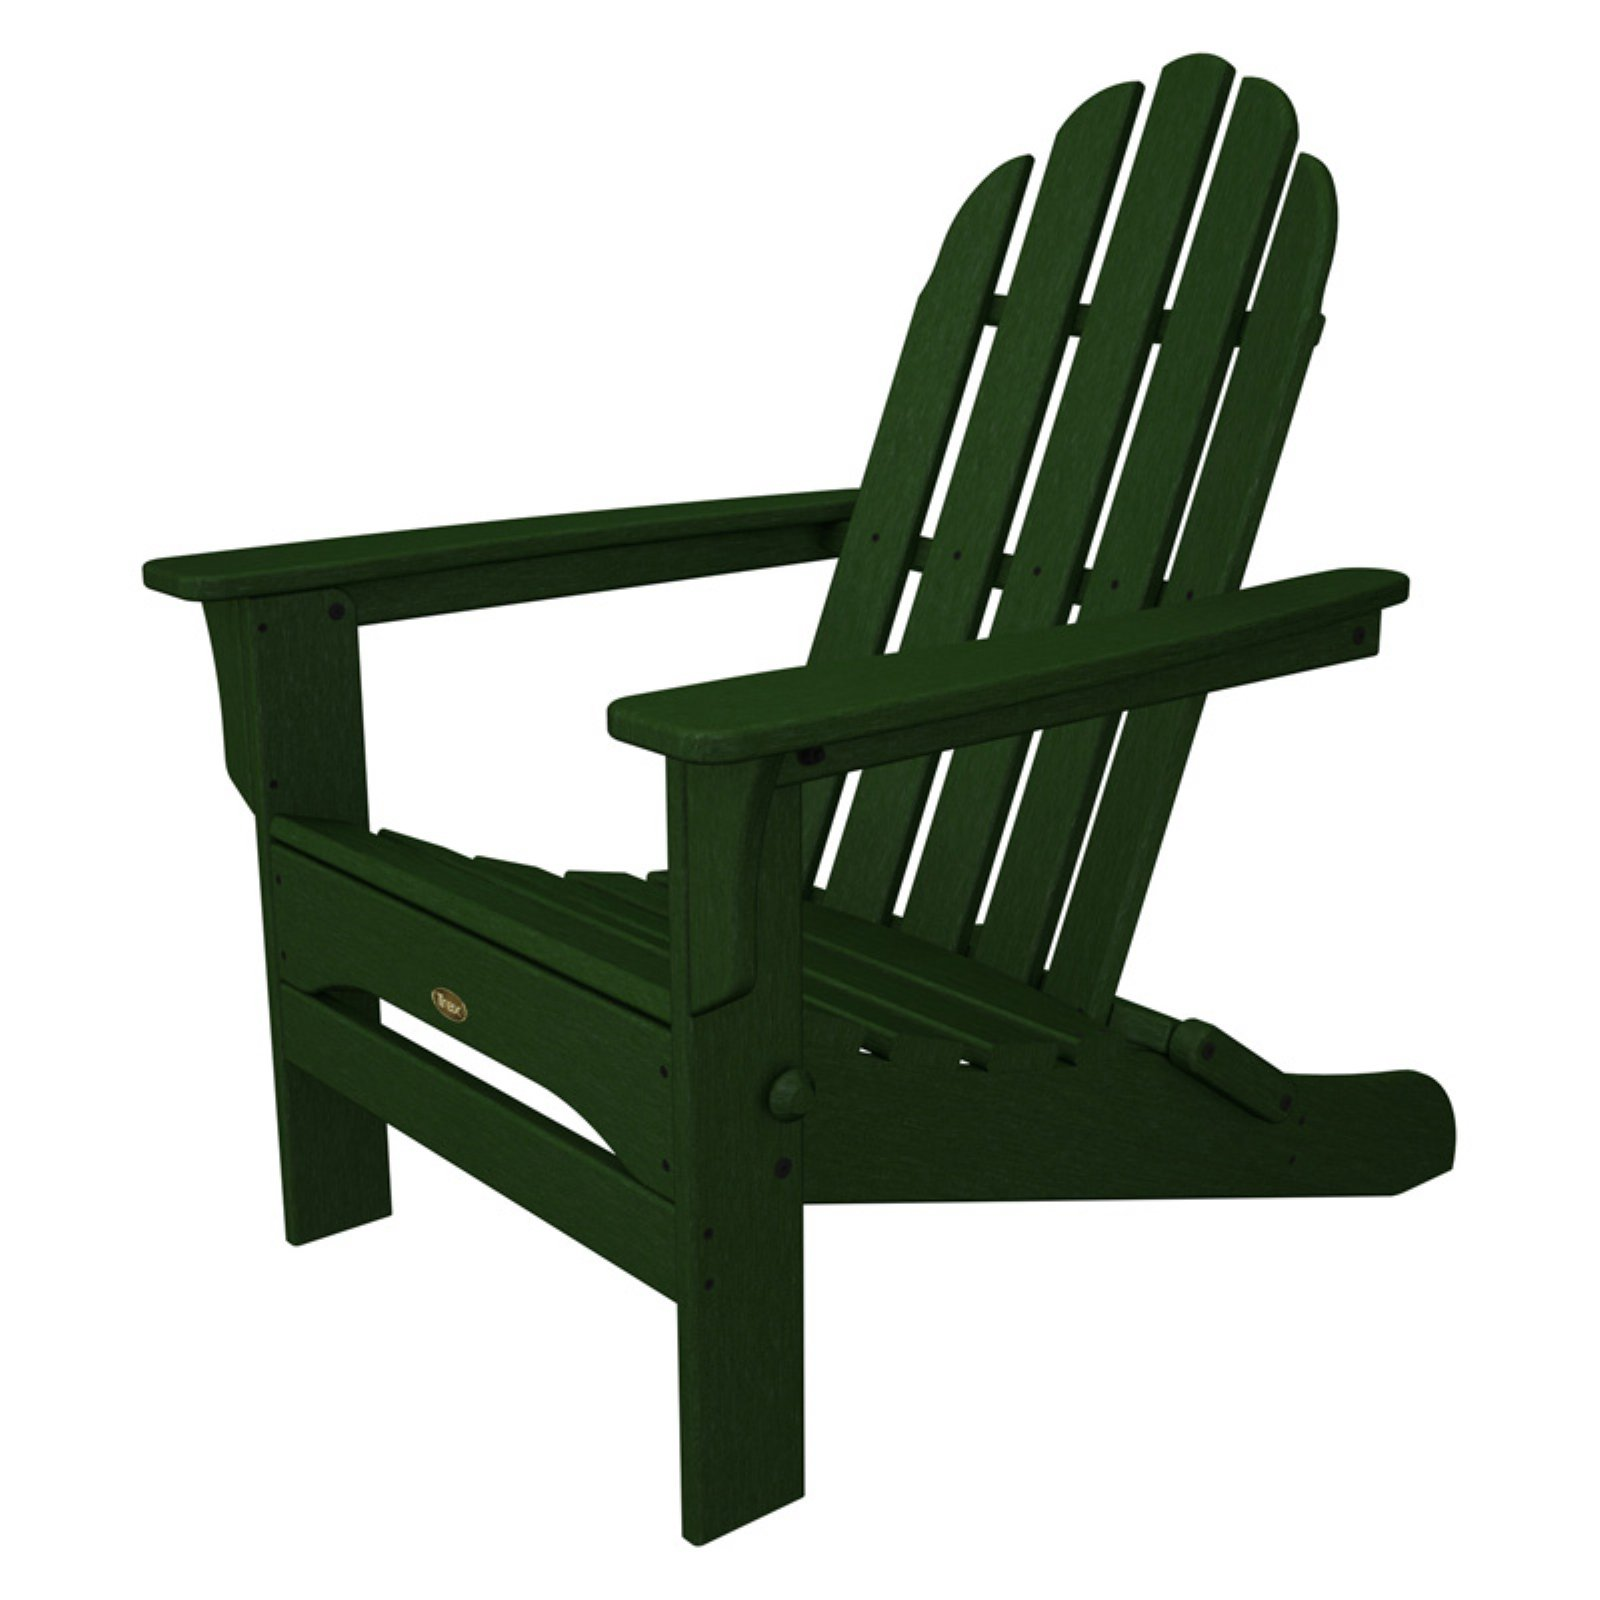 Beau Trex Outdoor Furniture Recycled Plastic Cape Cod Folding Adirondack Chair